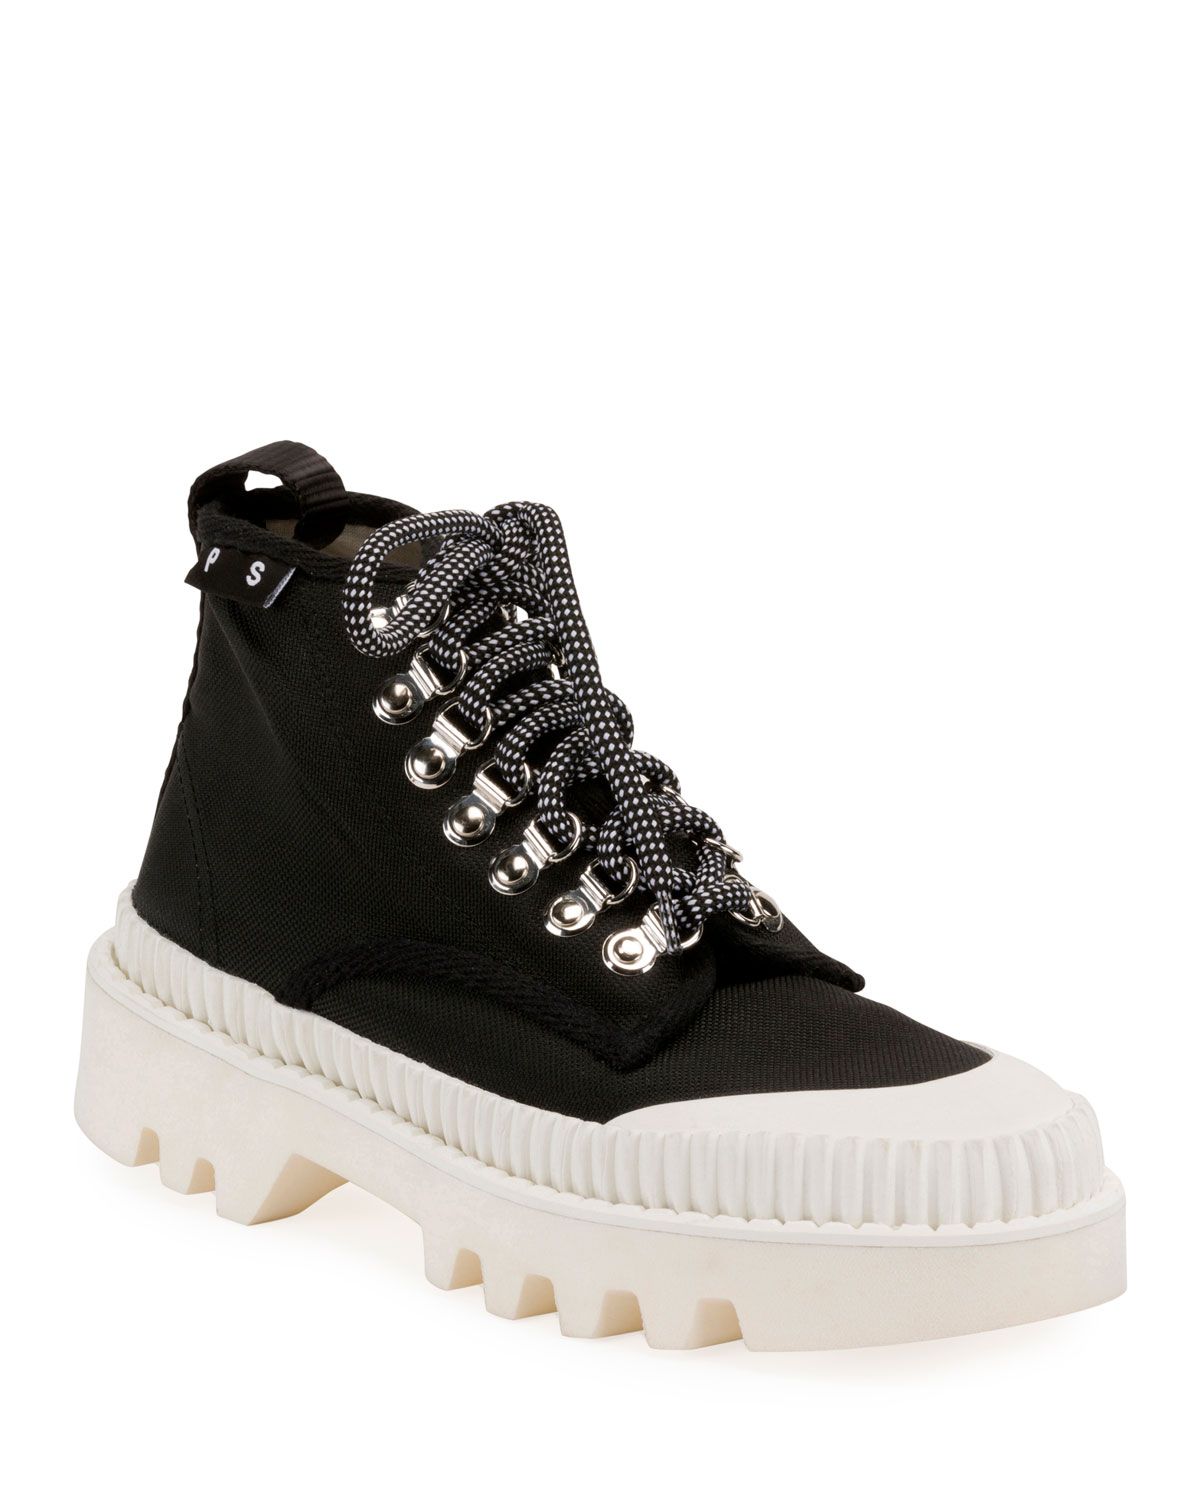 Nylon High-Top Platform Sneakers